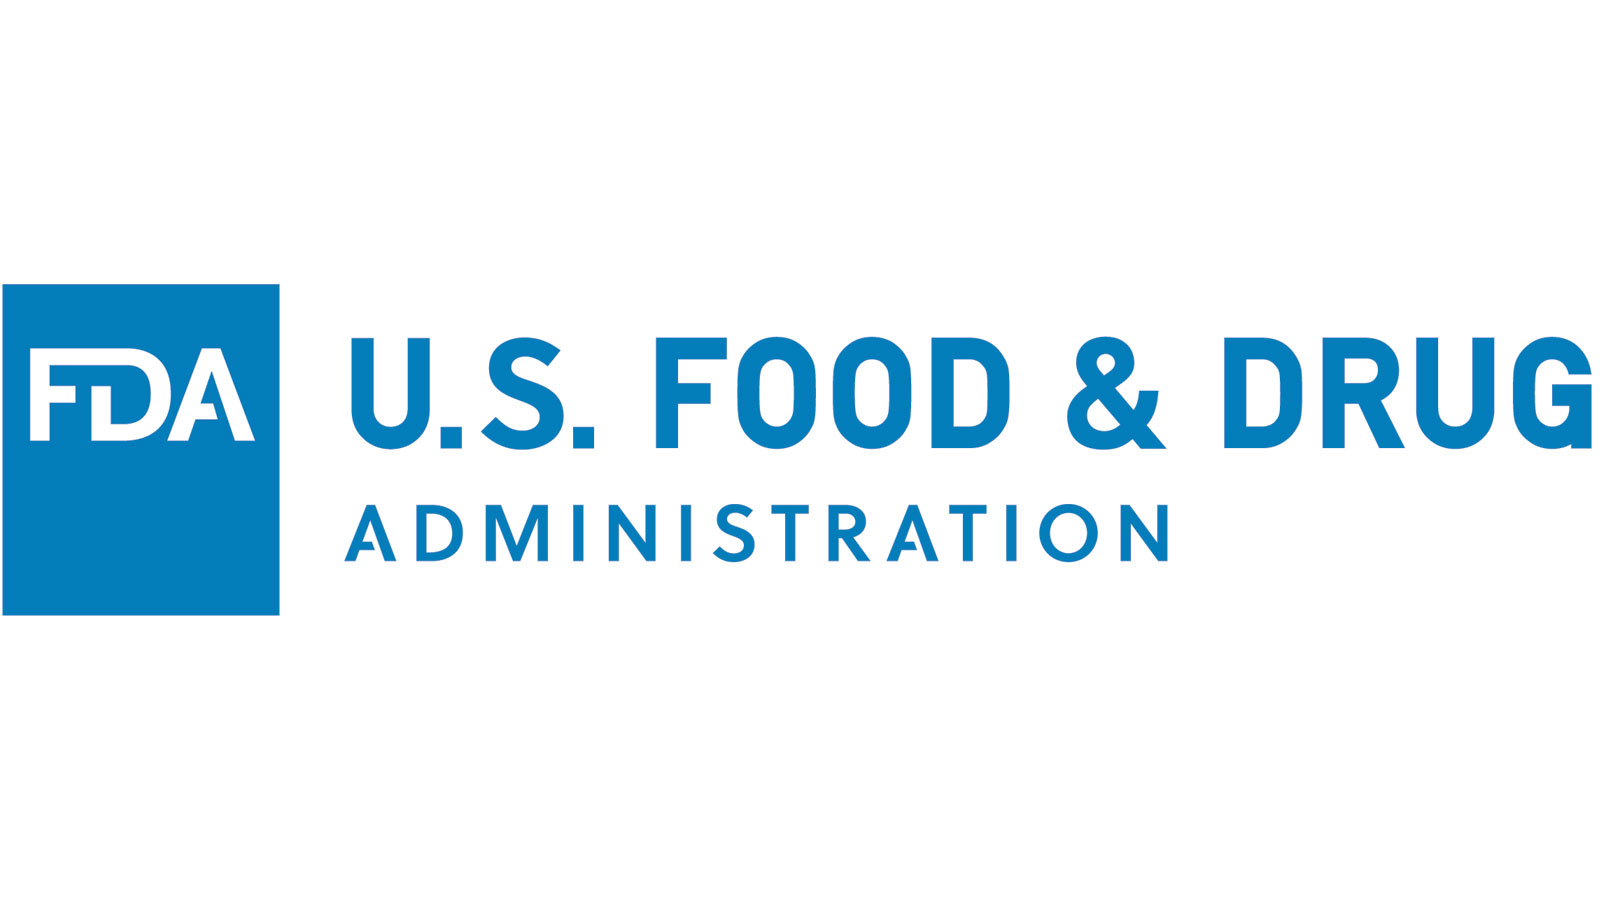 HRC Urges U.S. Food and Drug Administration to Make Swift Changes to Its So-Called Blood Ban